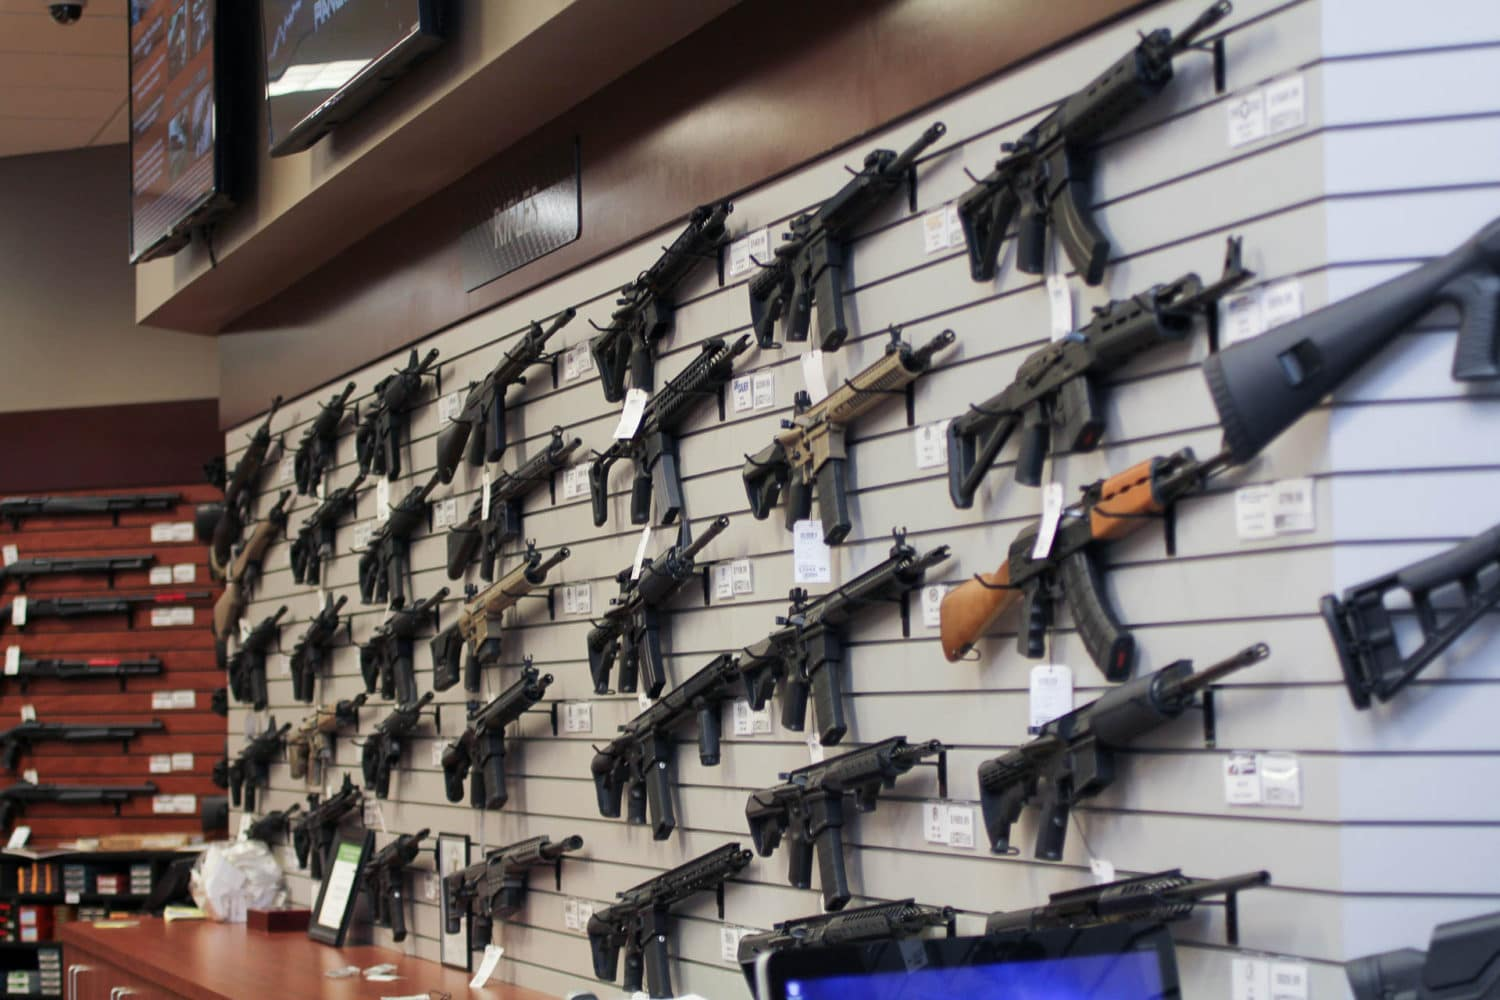 San Diego Gun Store Display